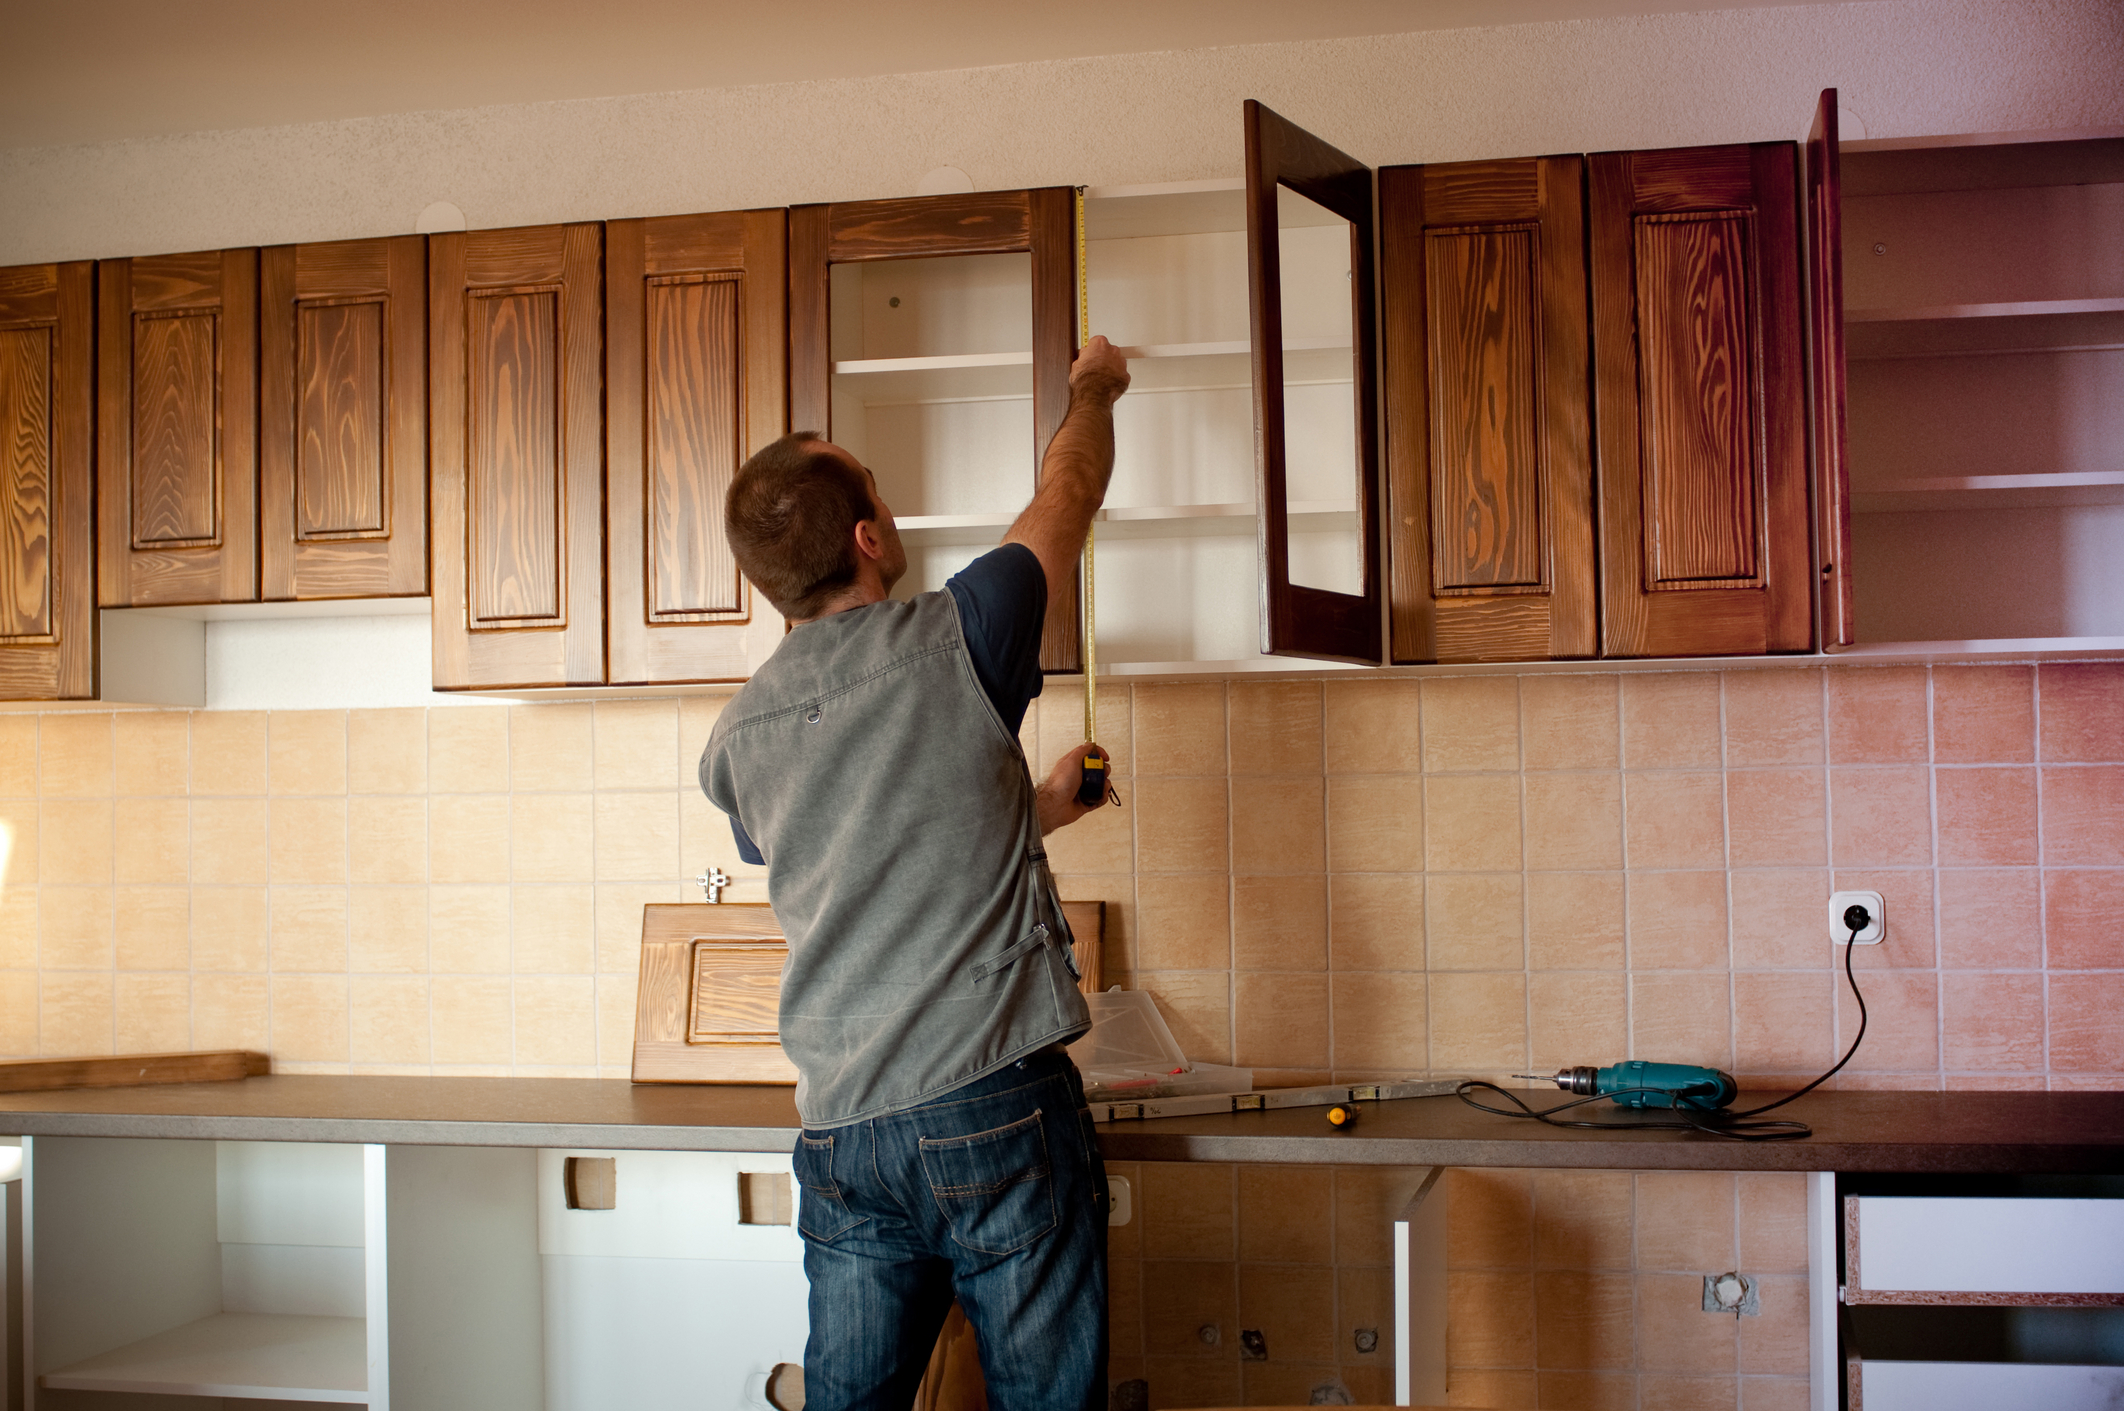 kuchenmobel selbst bekleben : What Home Remodeling Projects are Worth Your Time & Money Property ...